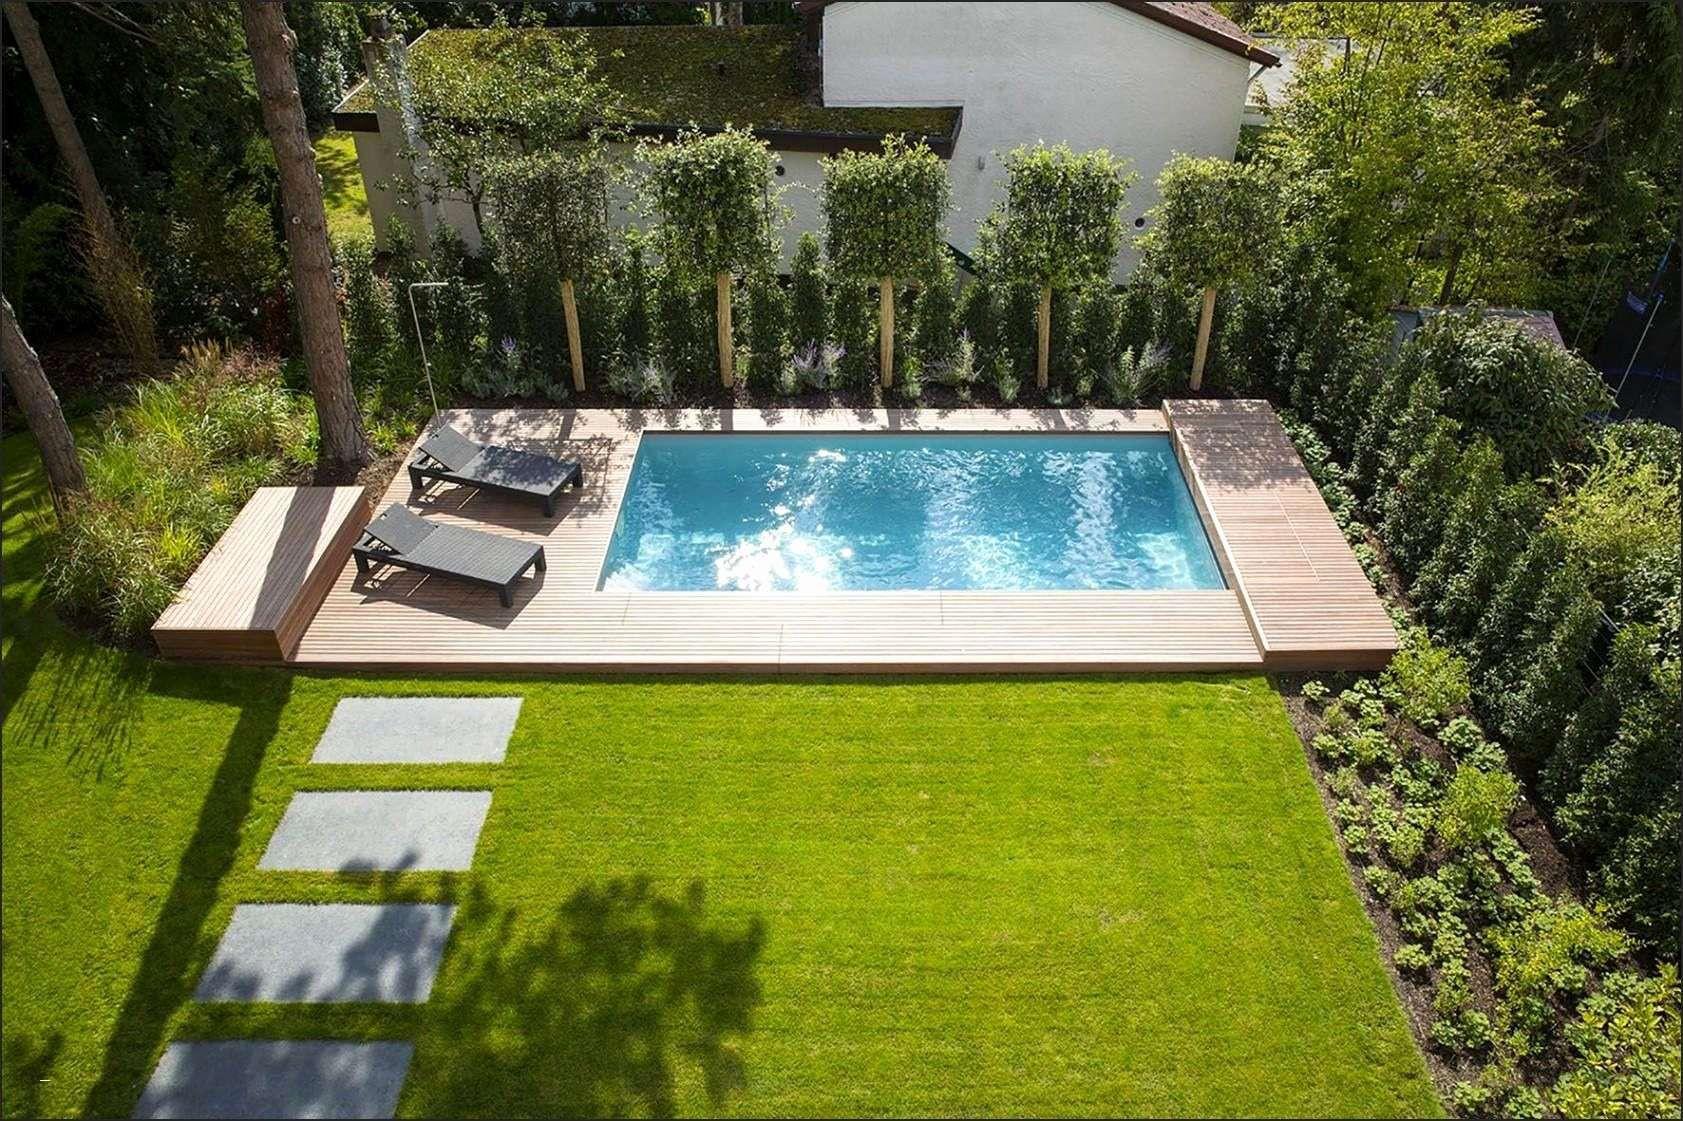 Garden Pool Room Uk Check More At Http Www Arch20 Club 2018 05 13 Garden Pool Room Uk Pool Landscape Design Backyard Pool Designs Small Backyard Landscaping